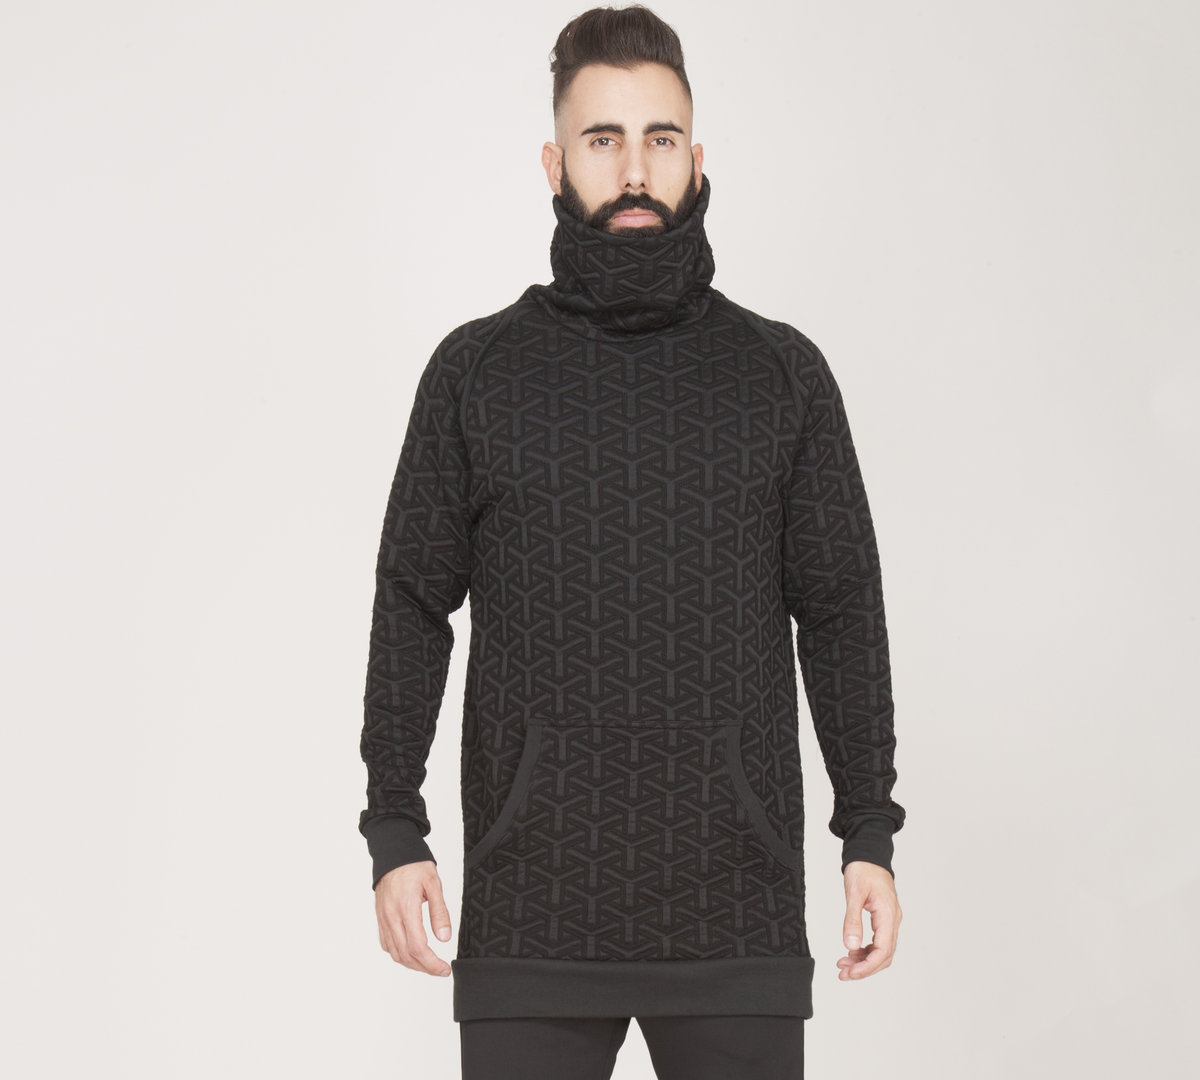 TRAY STYLING TURTLE NECK BLACK SWEATER